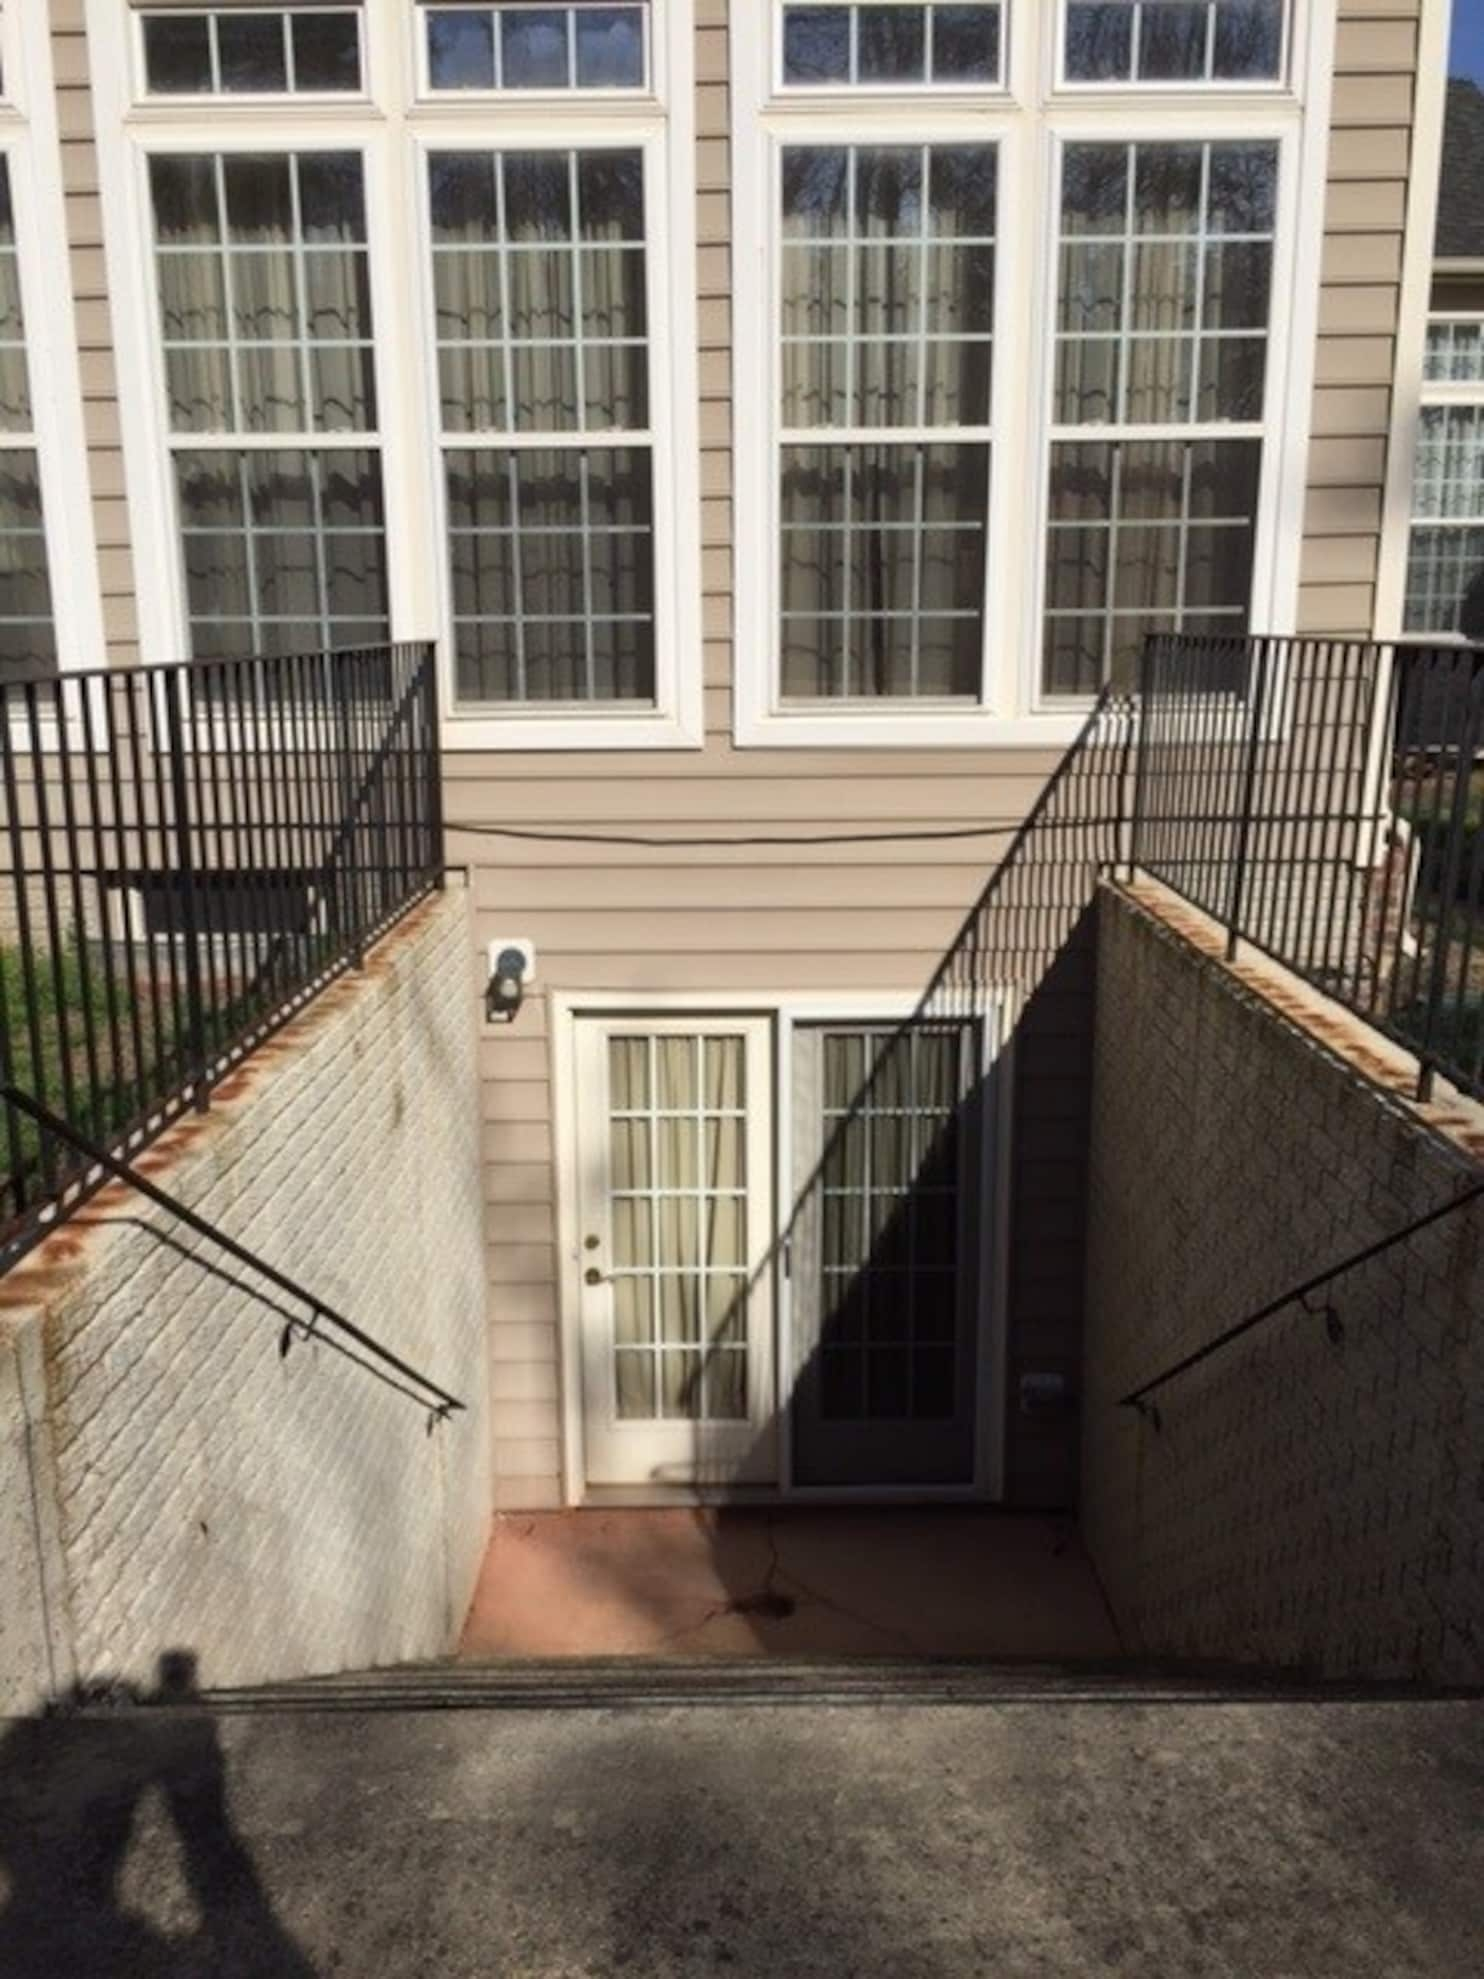 How To Stop Water From Running Down Outdoor Steps Into A Basement   Exterior Basement Entrance Stairs   Closed   Precast Concrete   Stone Wall   Daylight Window   Bedroom